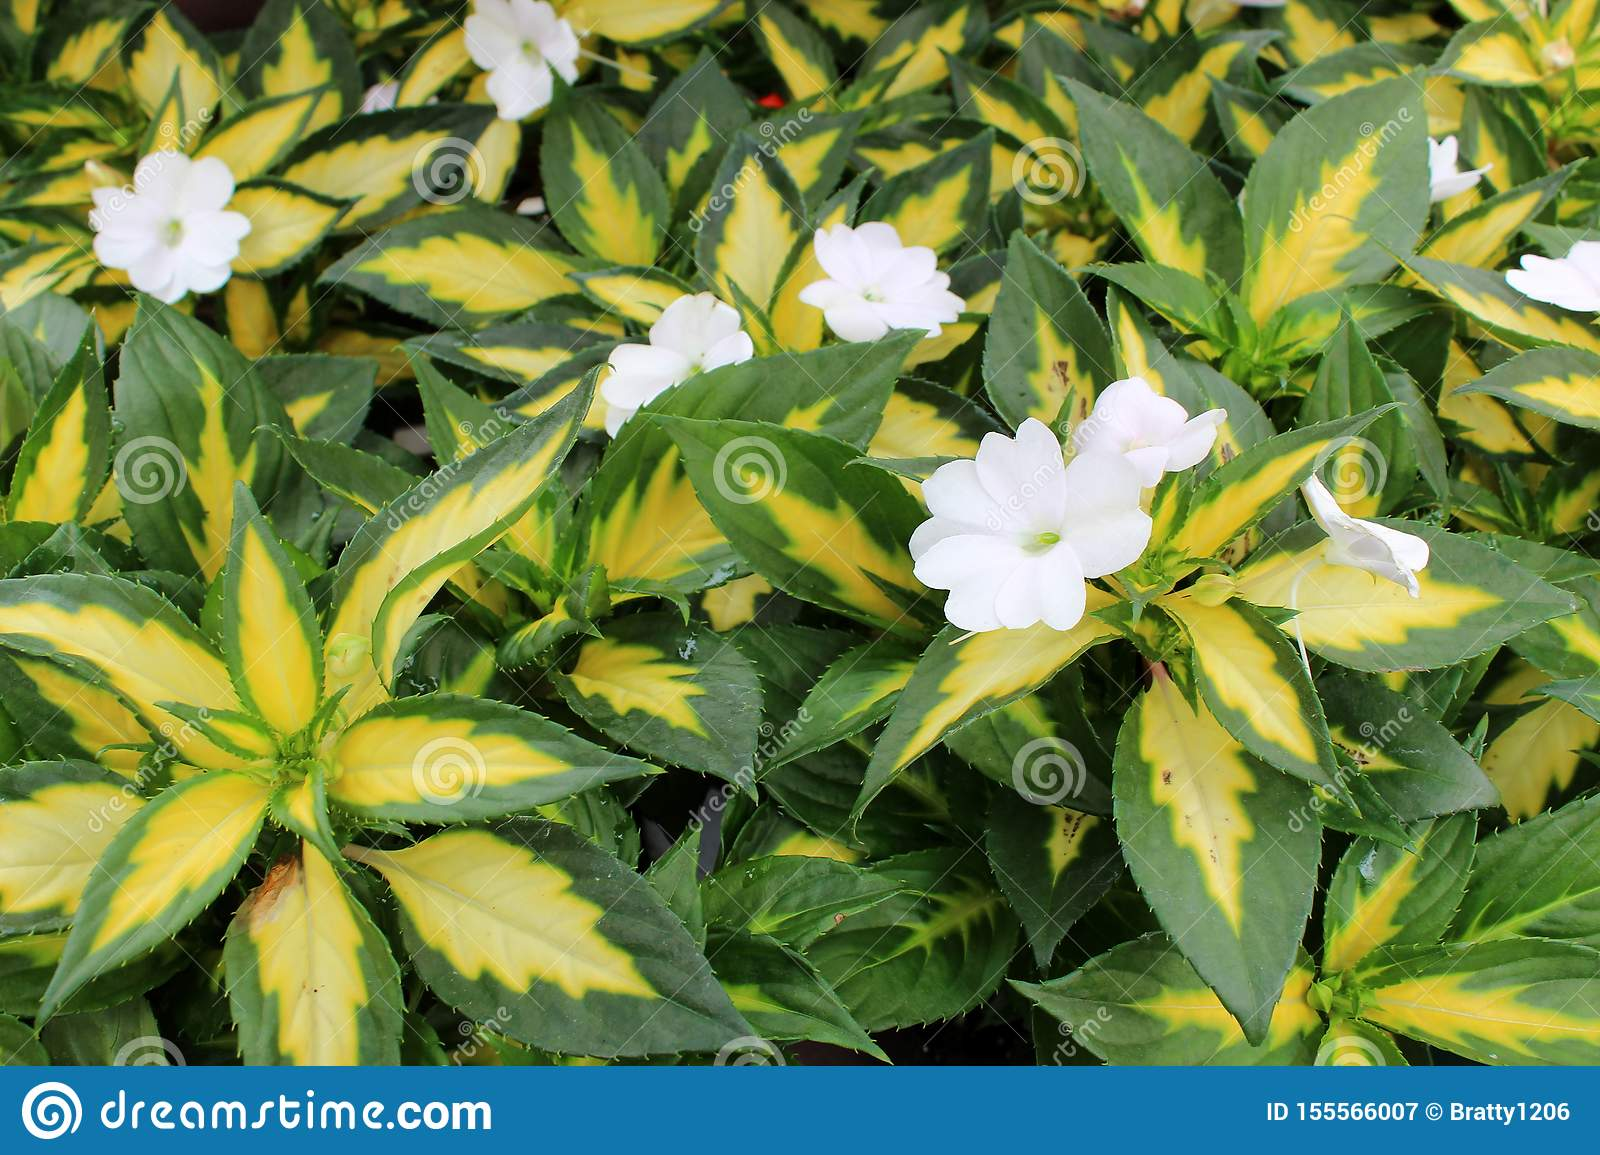 Bright Green And Yellow Leaves Of Plants In Garden With White Flowers Covering Surface Stock Image Image Of Colorful Surface 155566007